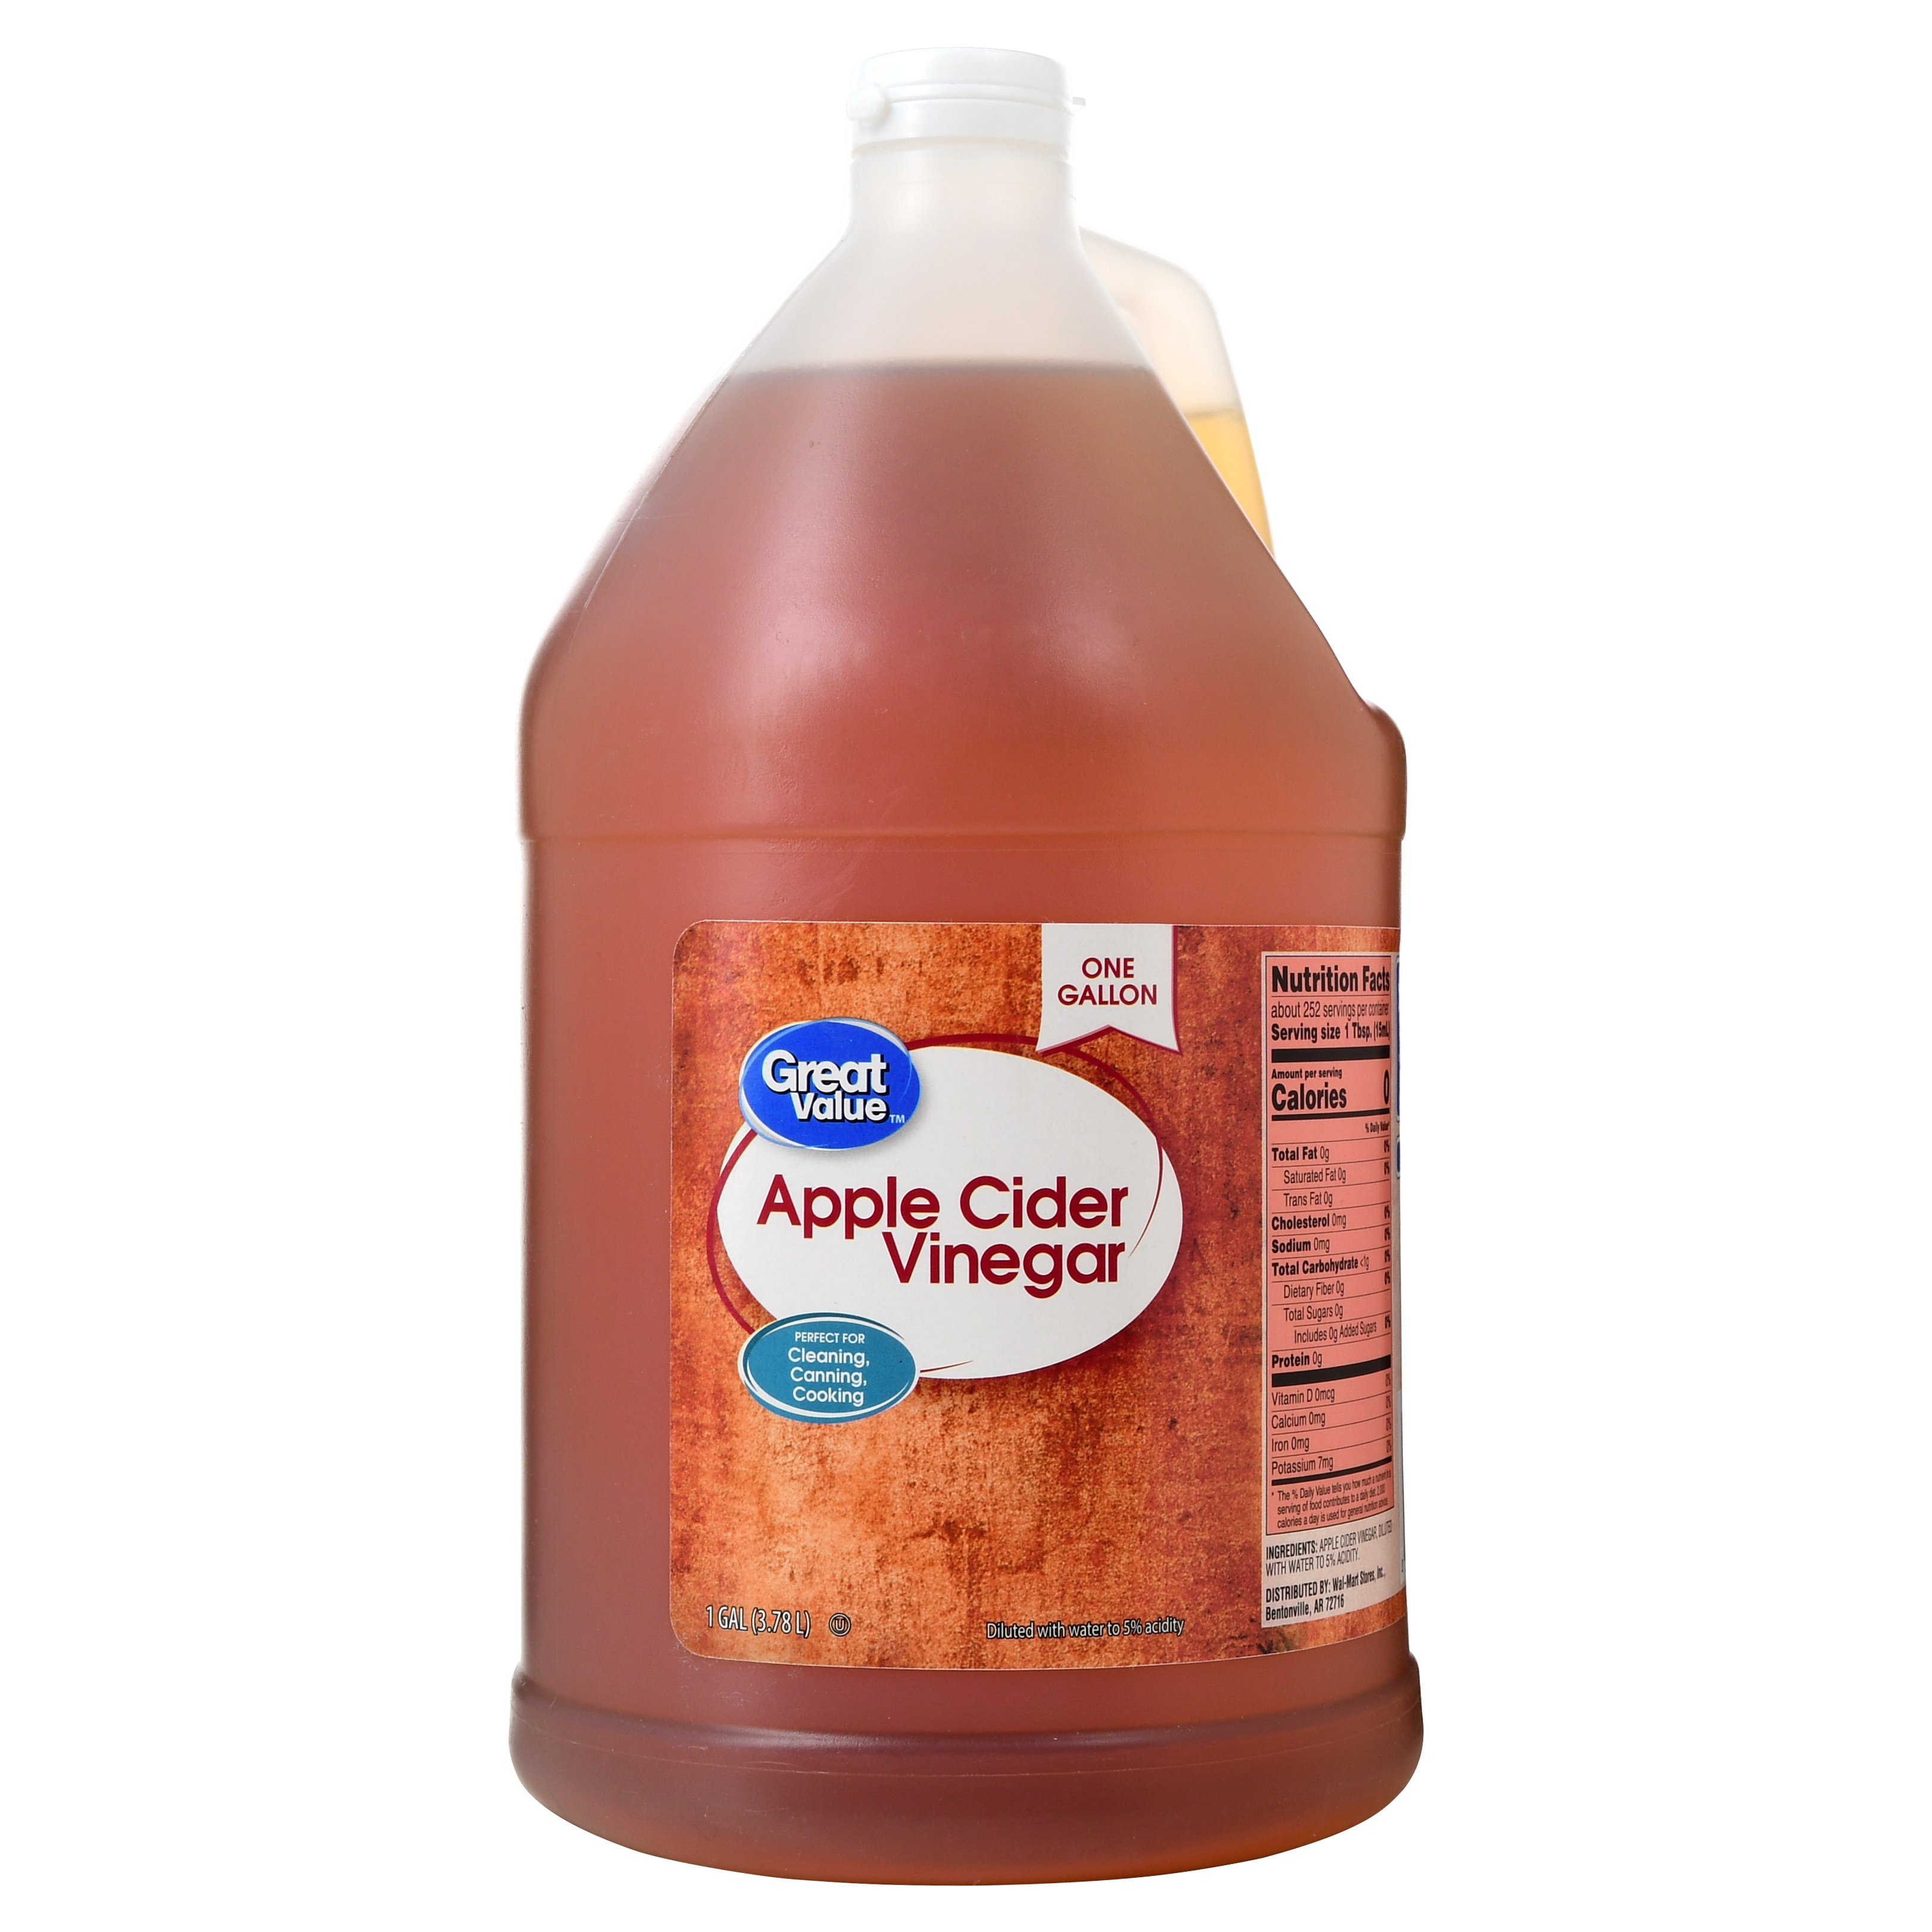 Great Value Apple Cider Vinegar, 128 oz